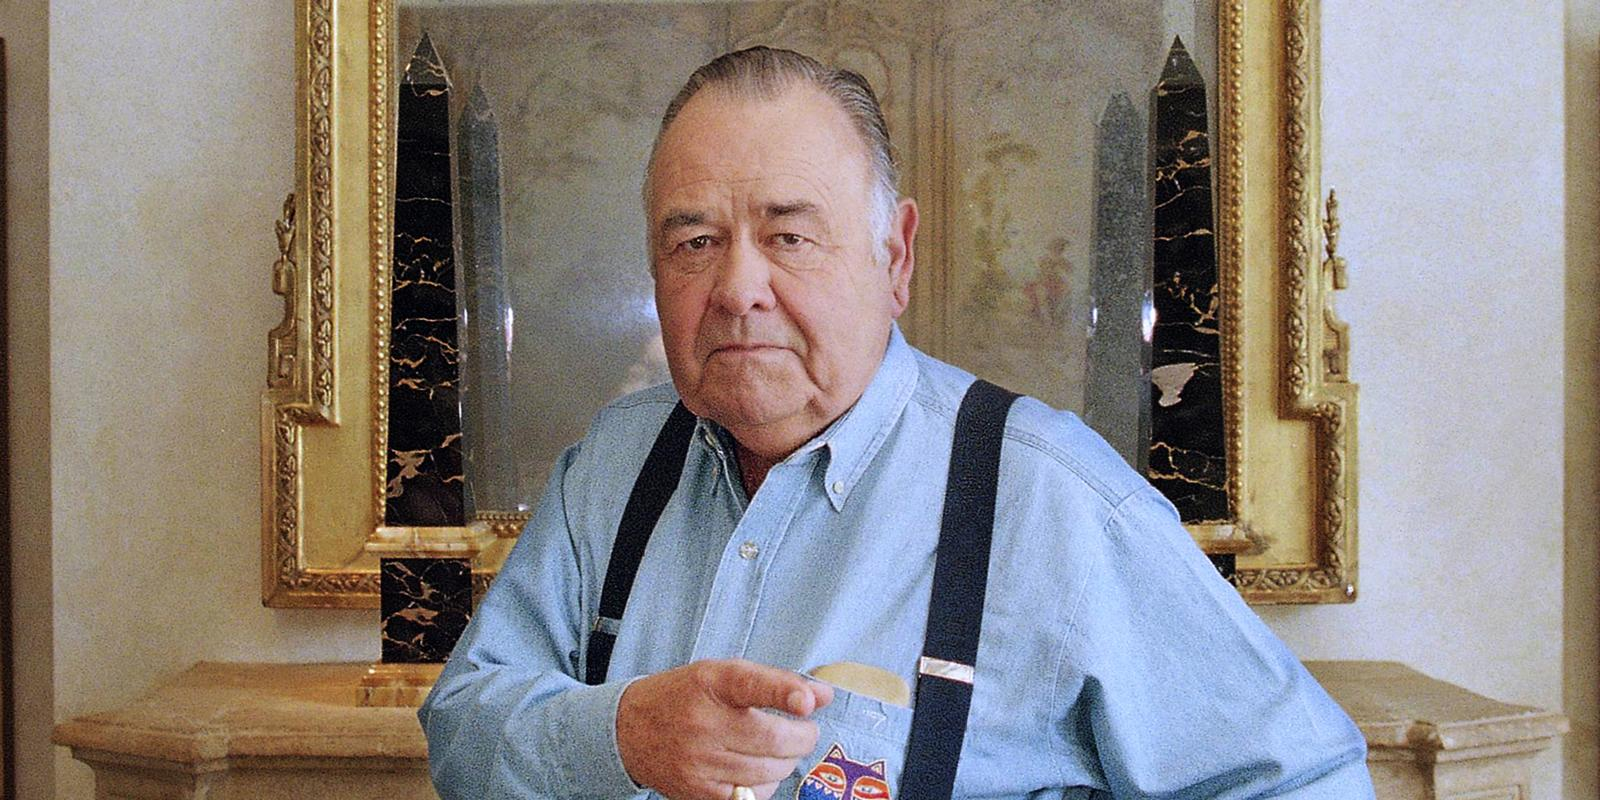 ' ' from the web at 'http://digitalspyuk.cdnds.net/13/15/1600x800/landscape_showbiz-jonathan-winters.jpg'